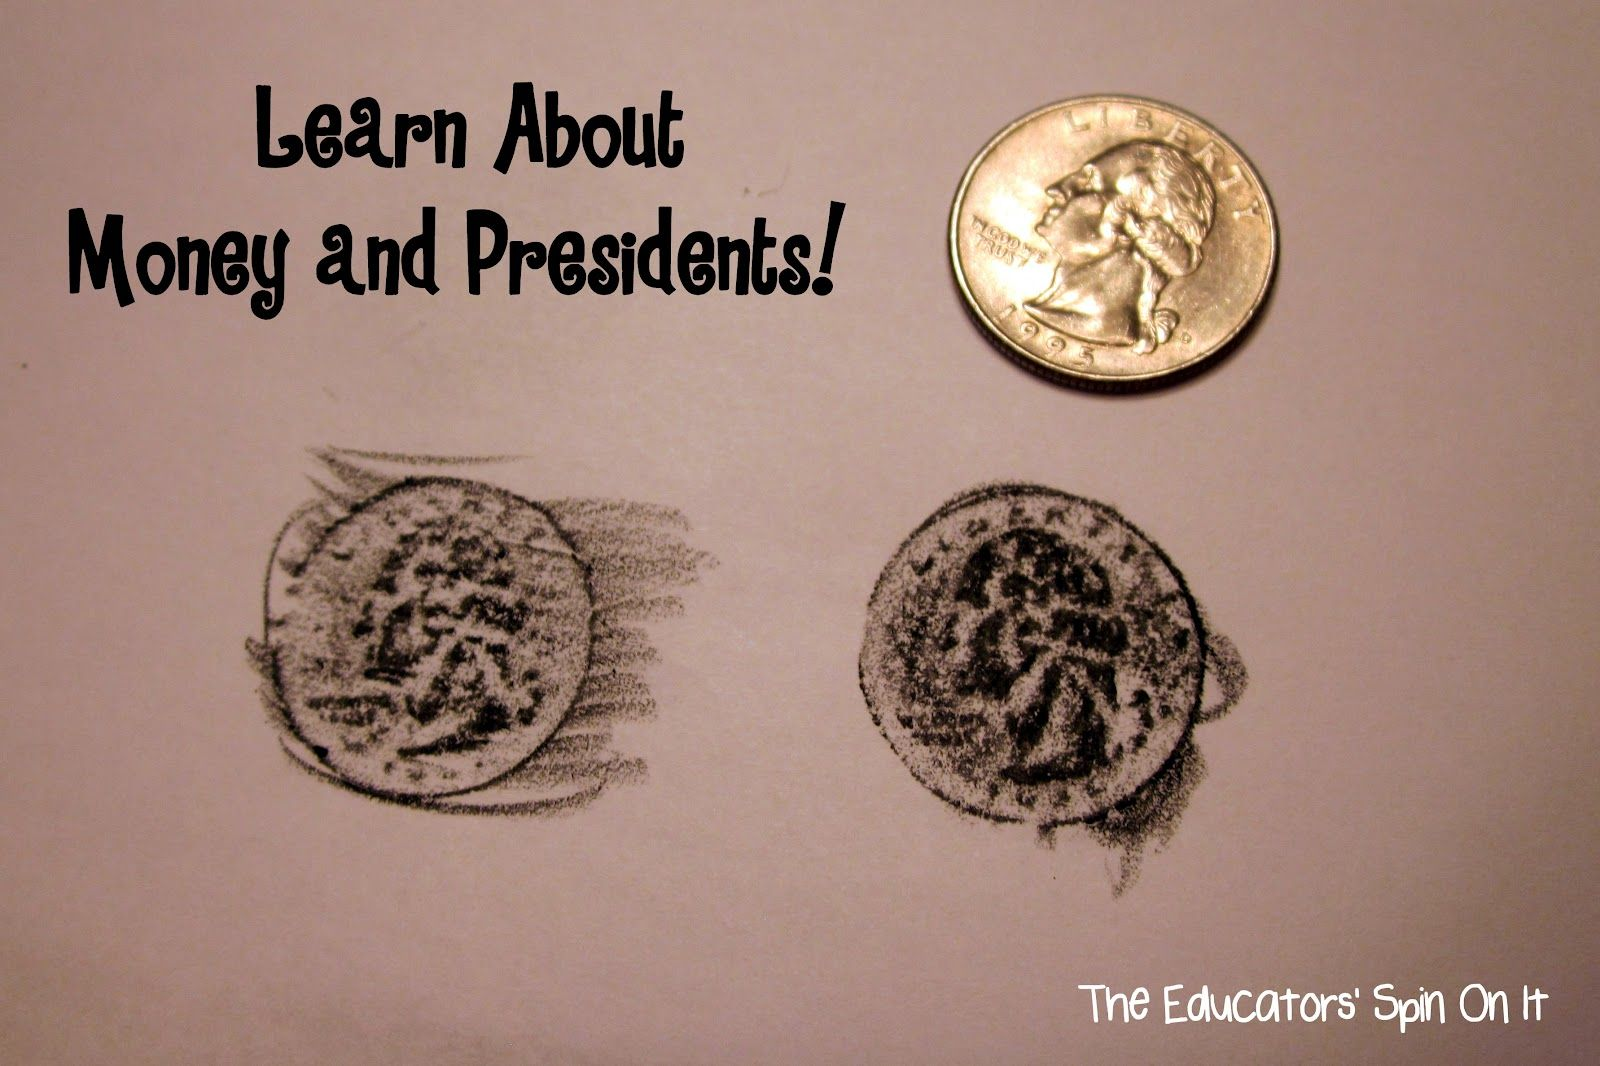 Coin Rubbings And Talk About The Presidents On Them When Studying Washington Or Lincoln Or